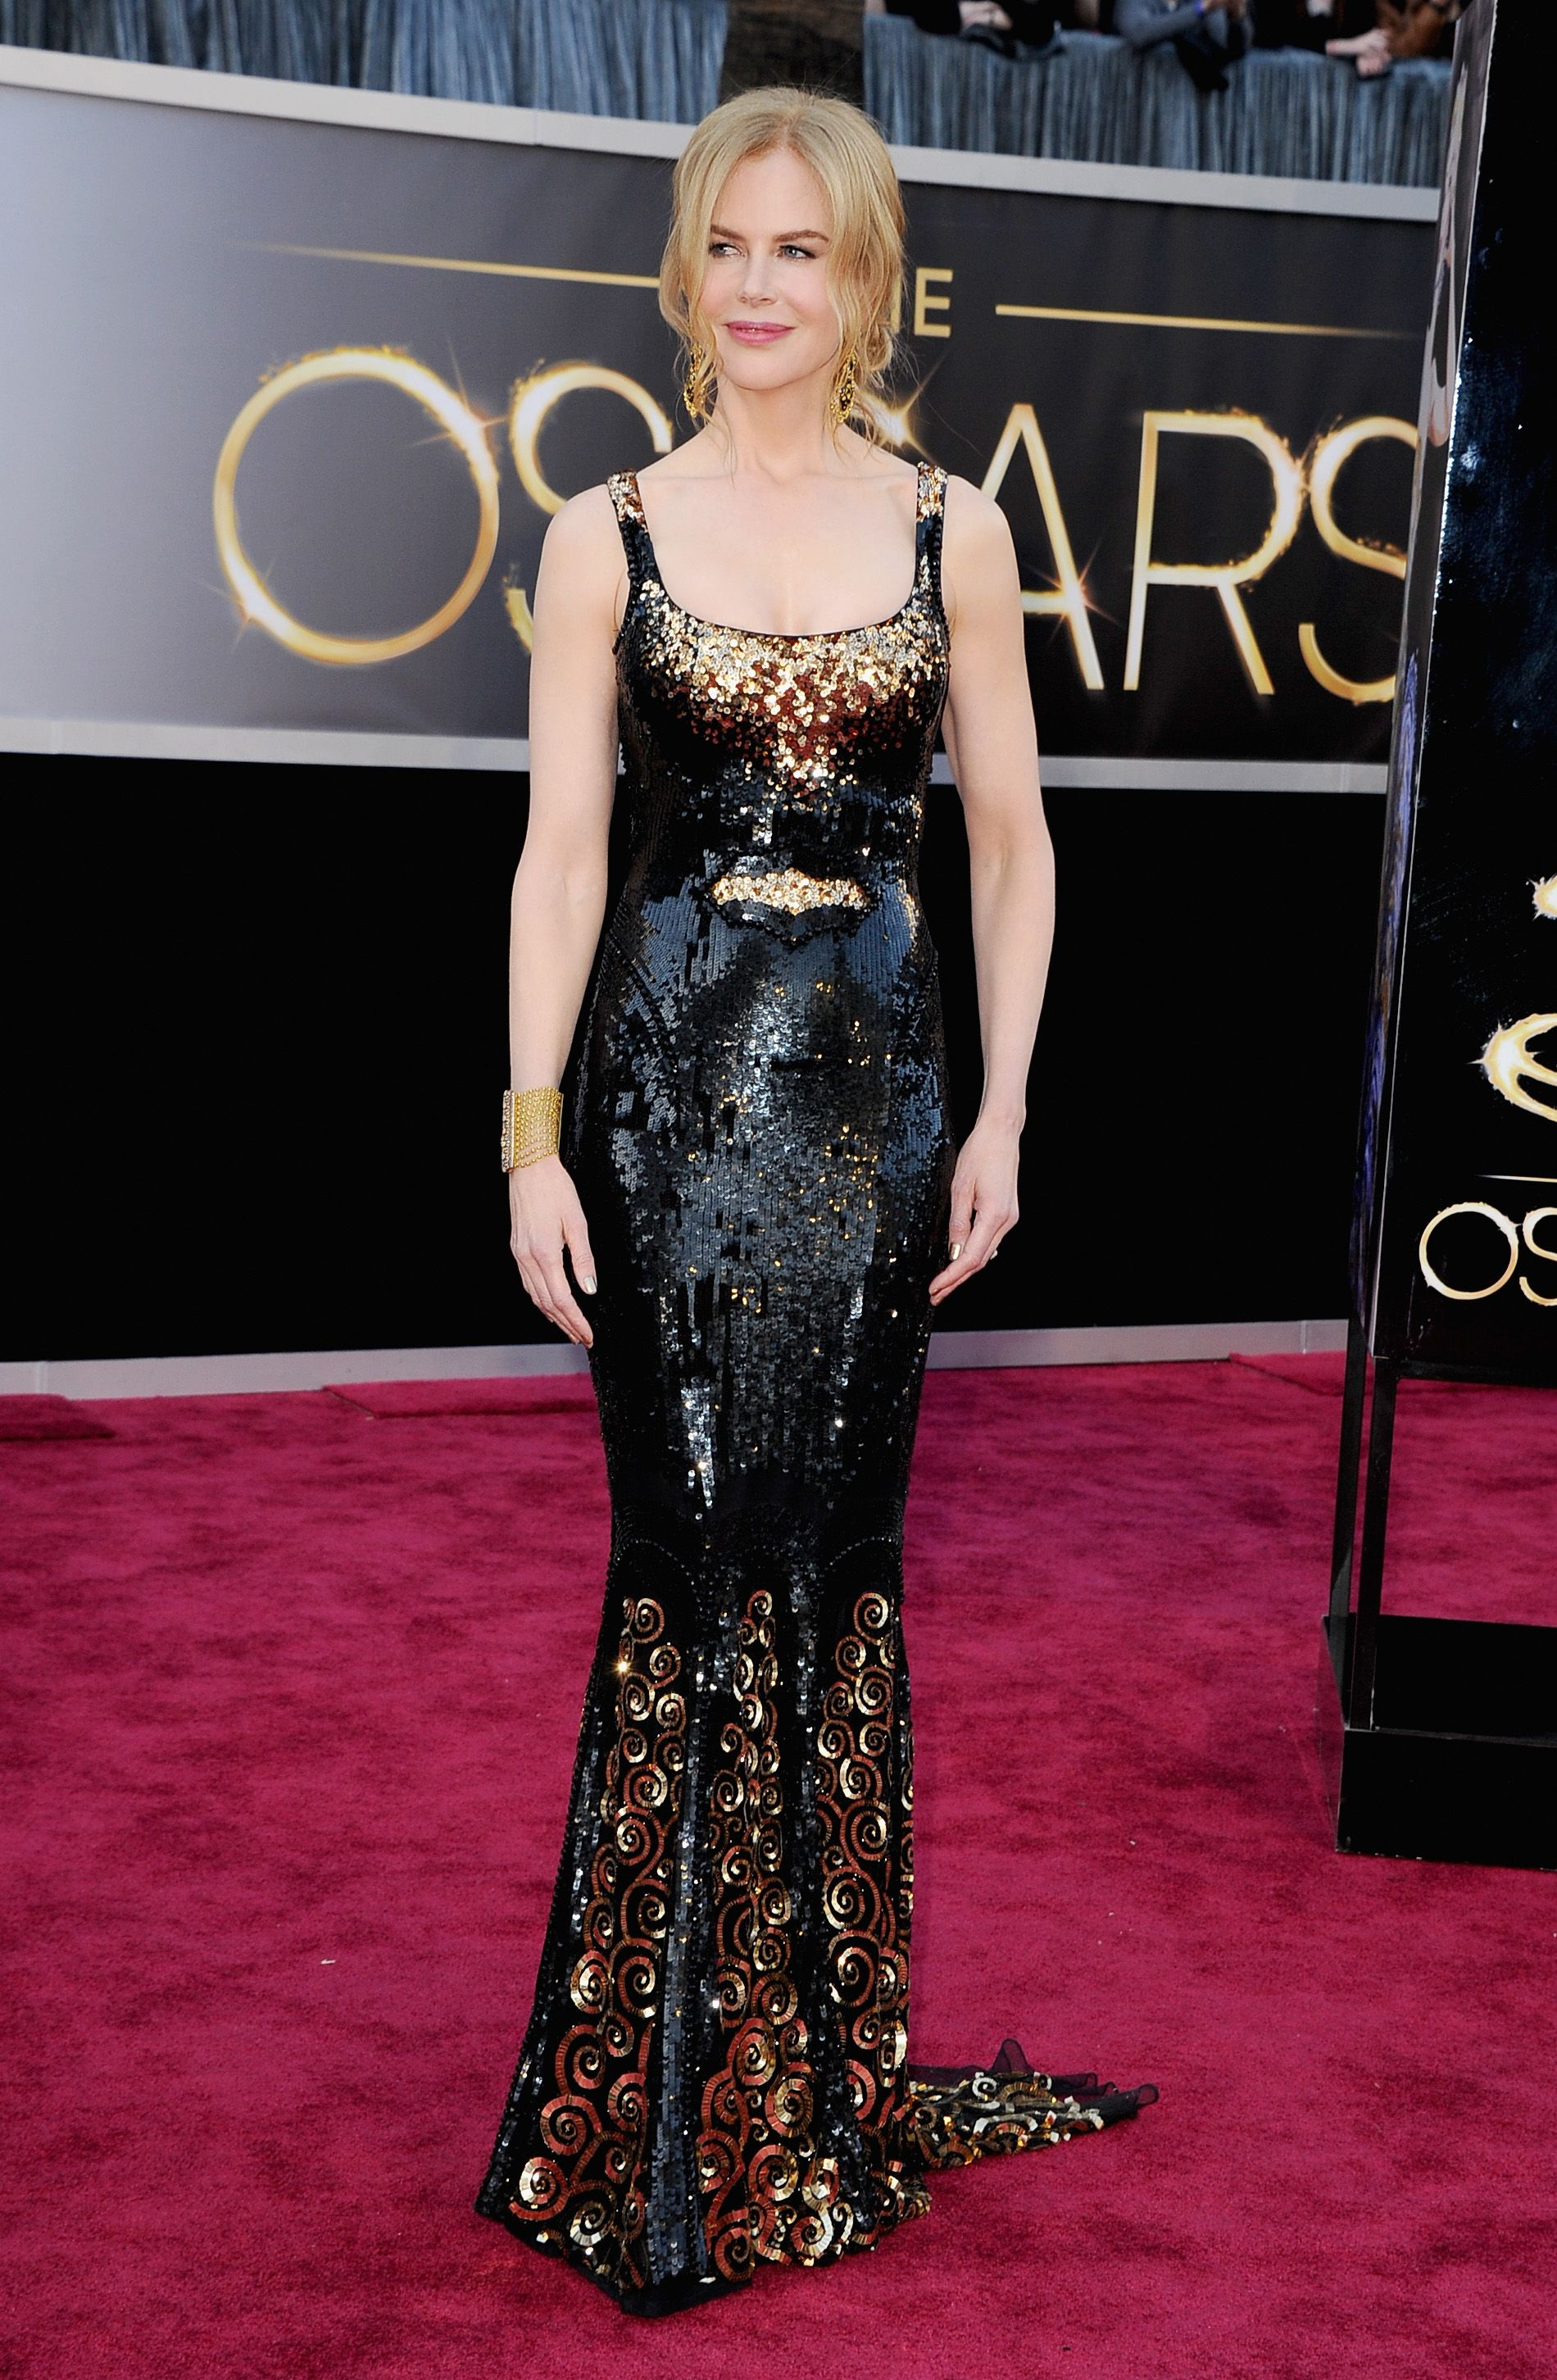 Nicole Kidman Sparkles in Black and